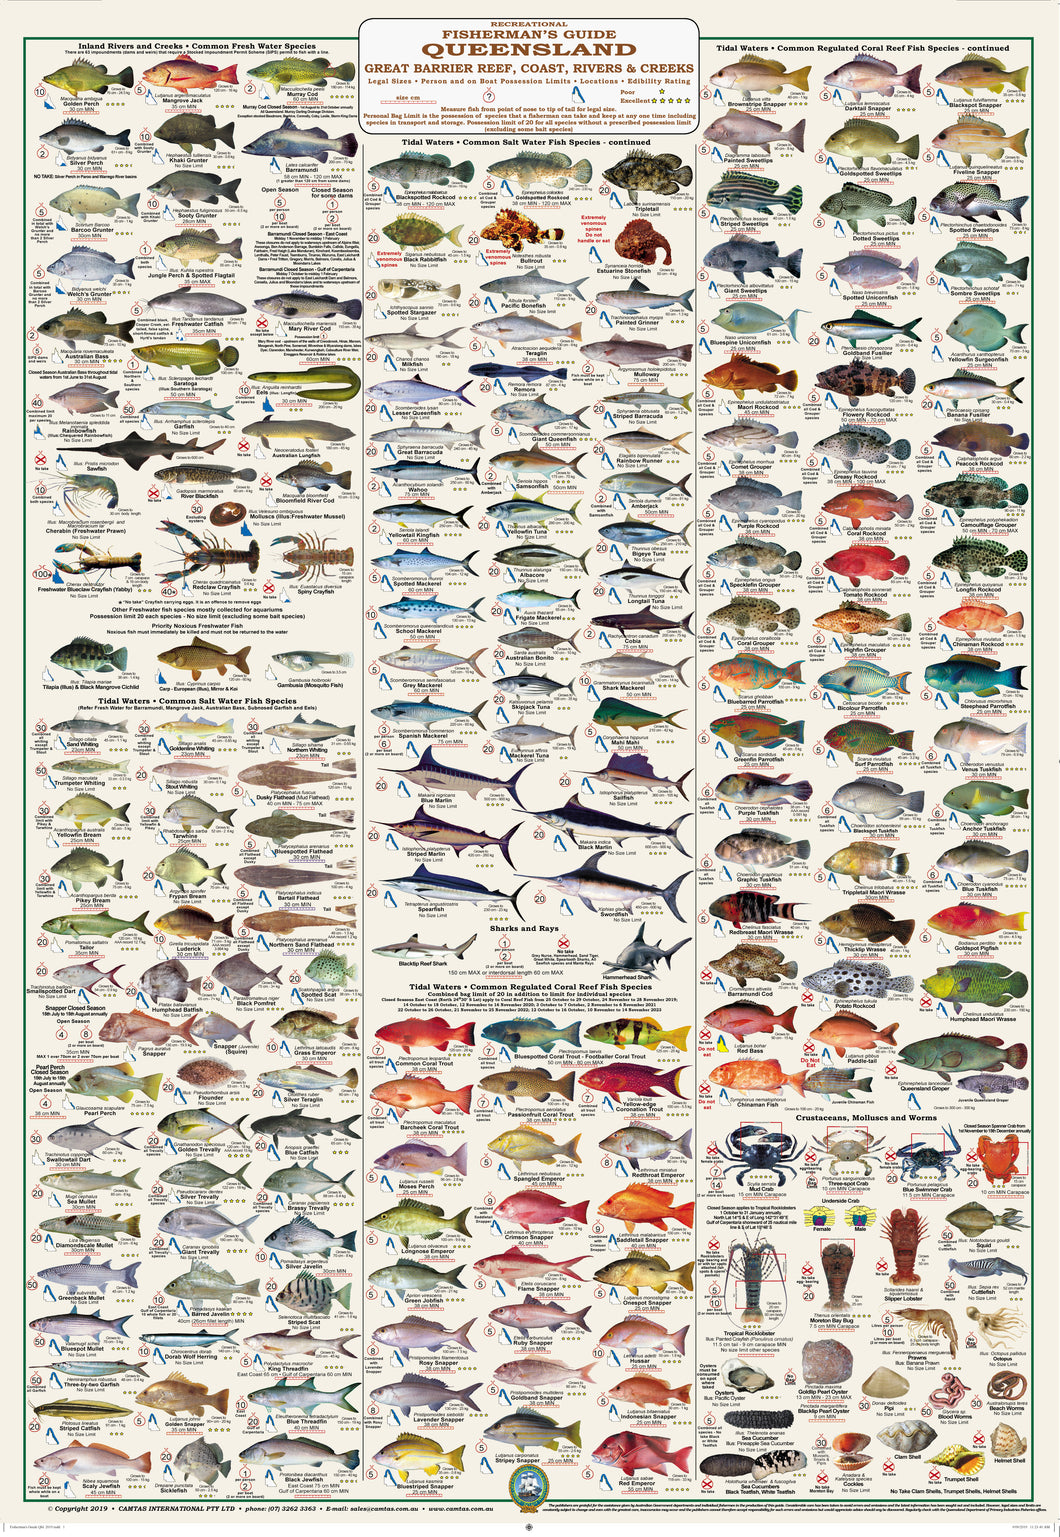 Fishermans Fish Identification - Qld. and Great Barrier Reef, Fisherman's Guide - Camtas Wall Chart / WCAF170